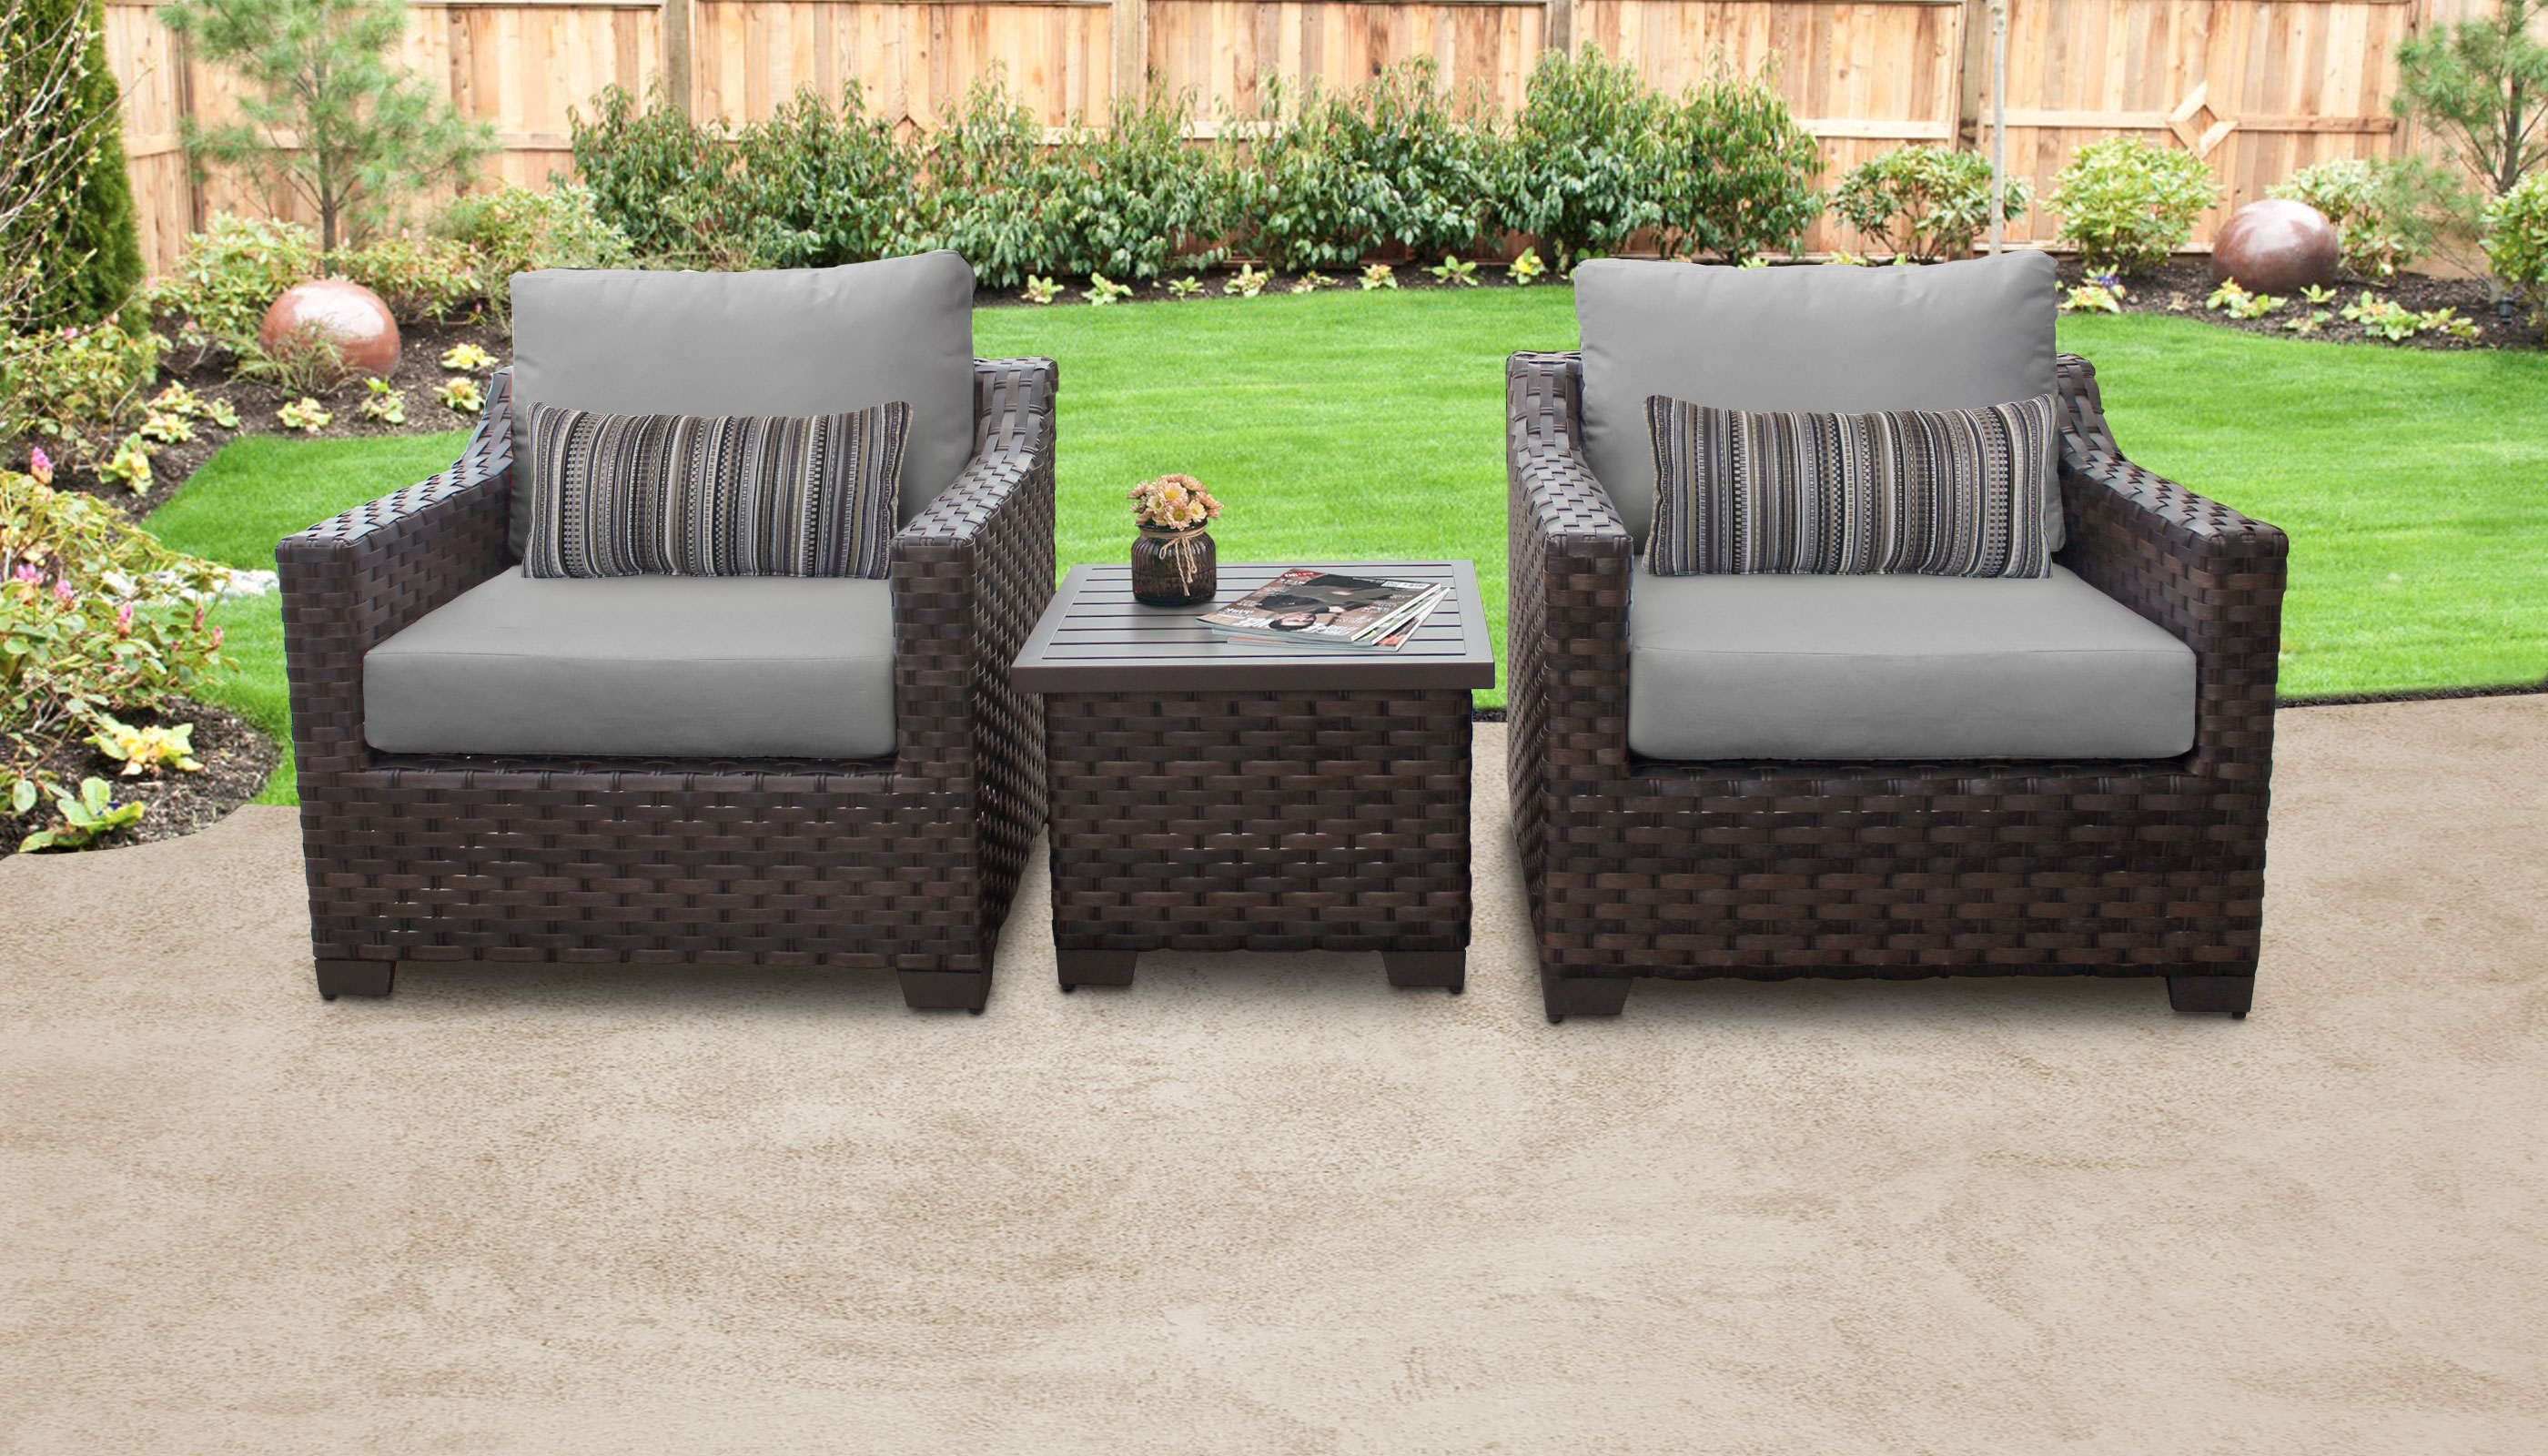 Newest 3 Piece Patio Lounger Sets Pertaining To River 3 Piece Outdoor Wicker Patio Furniture Set 03a (View 14 of 25)